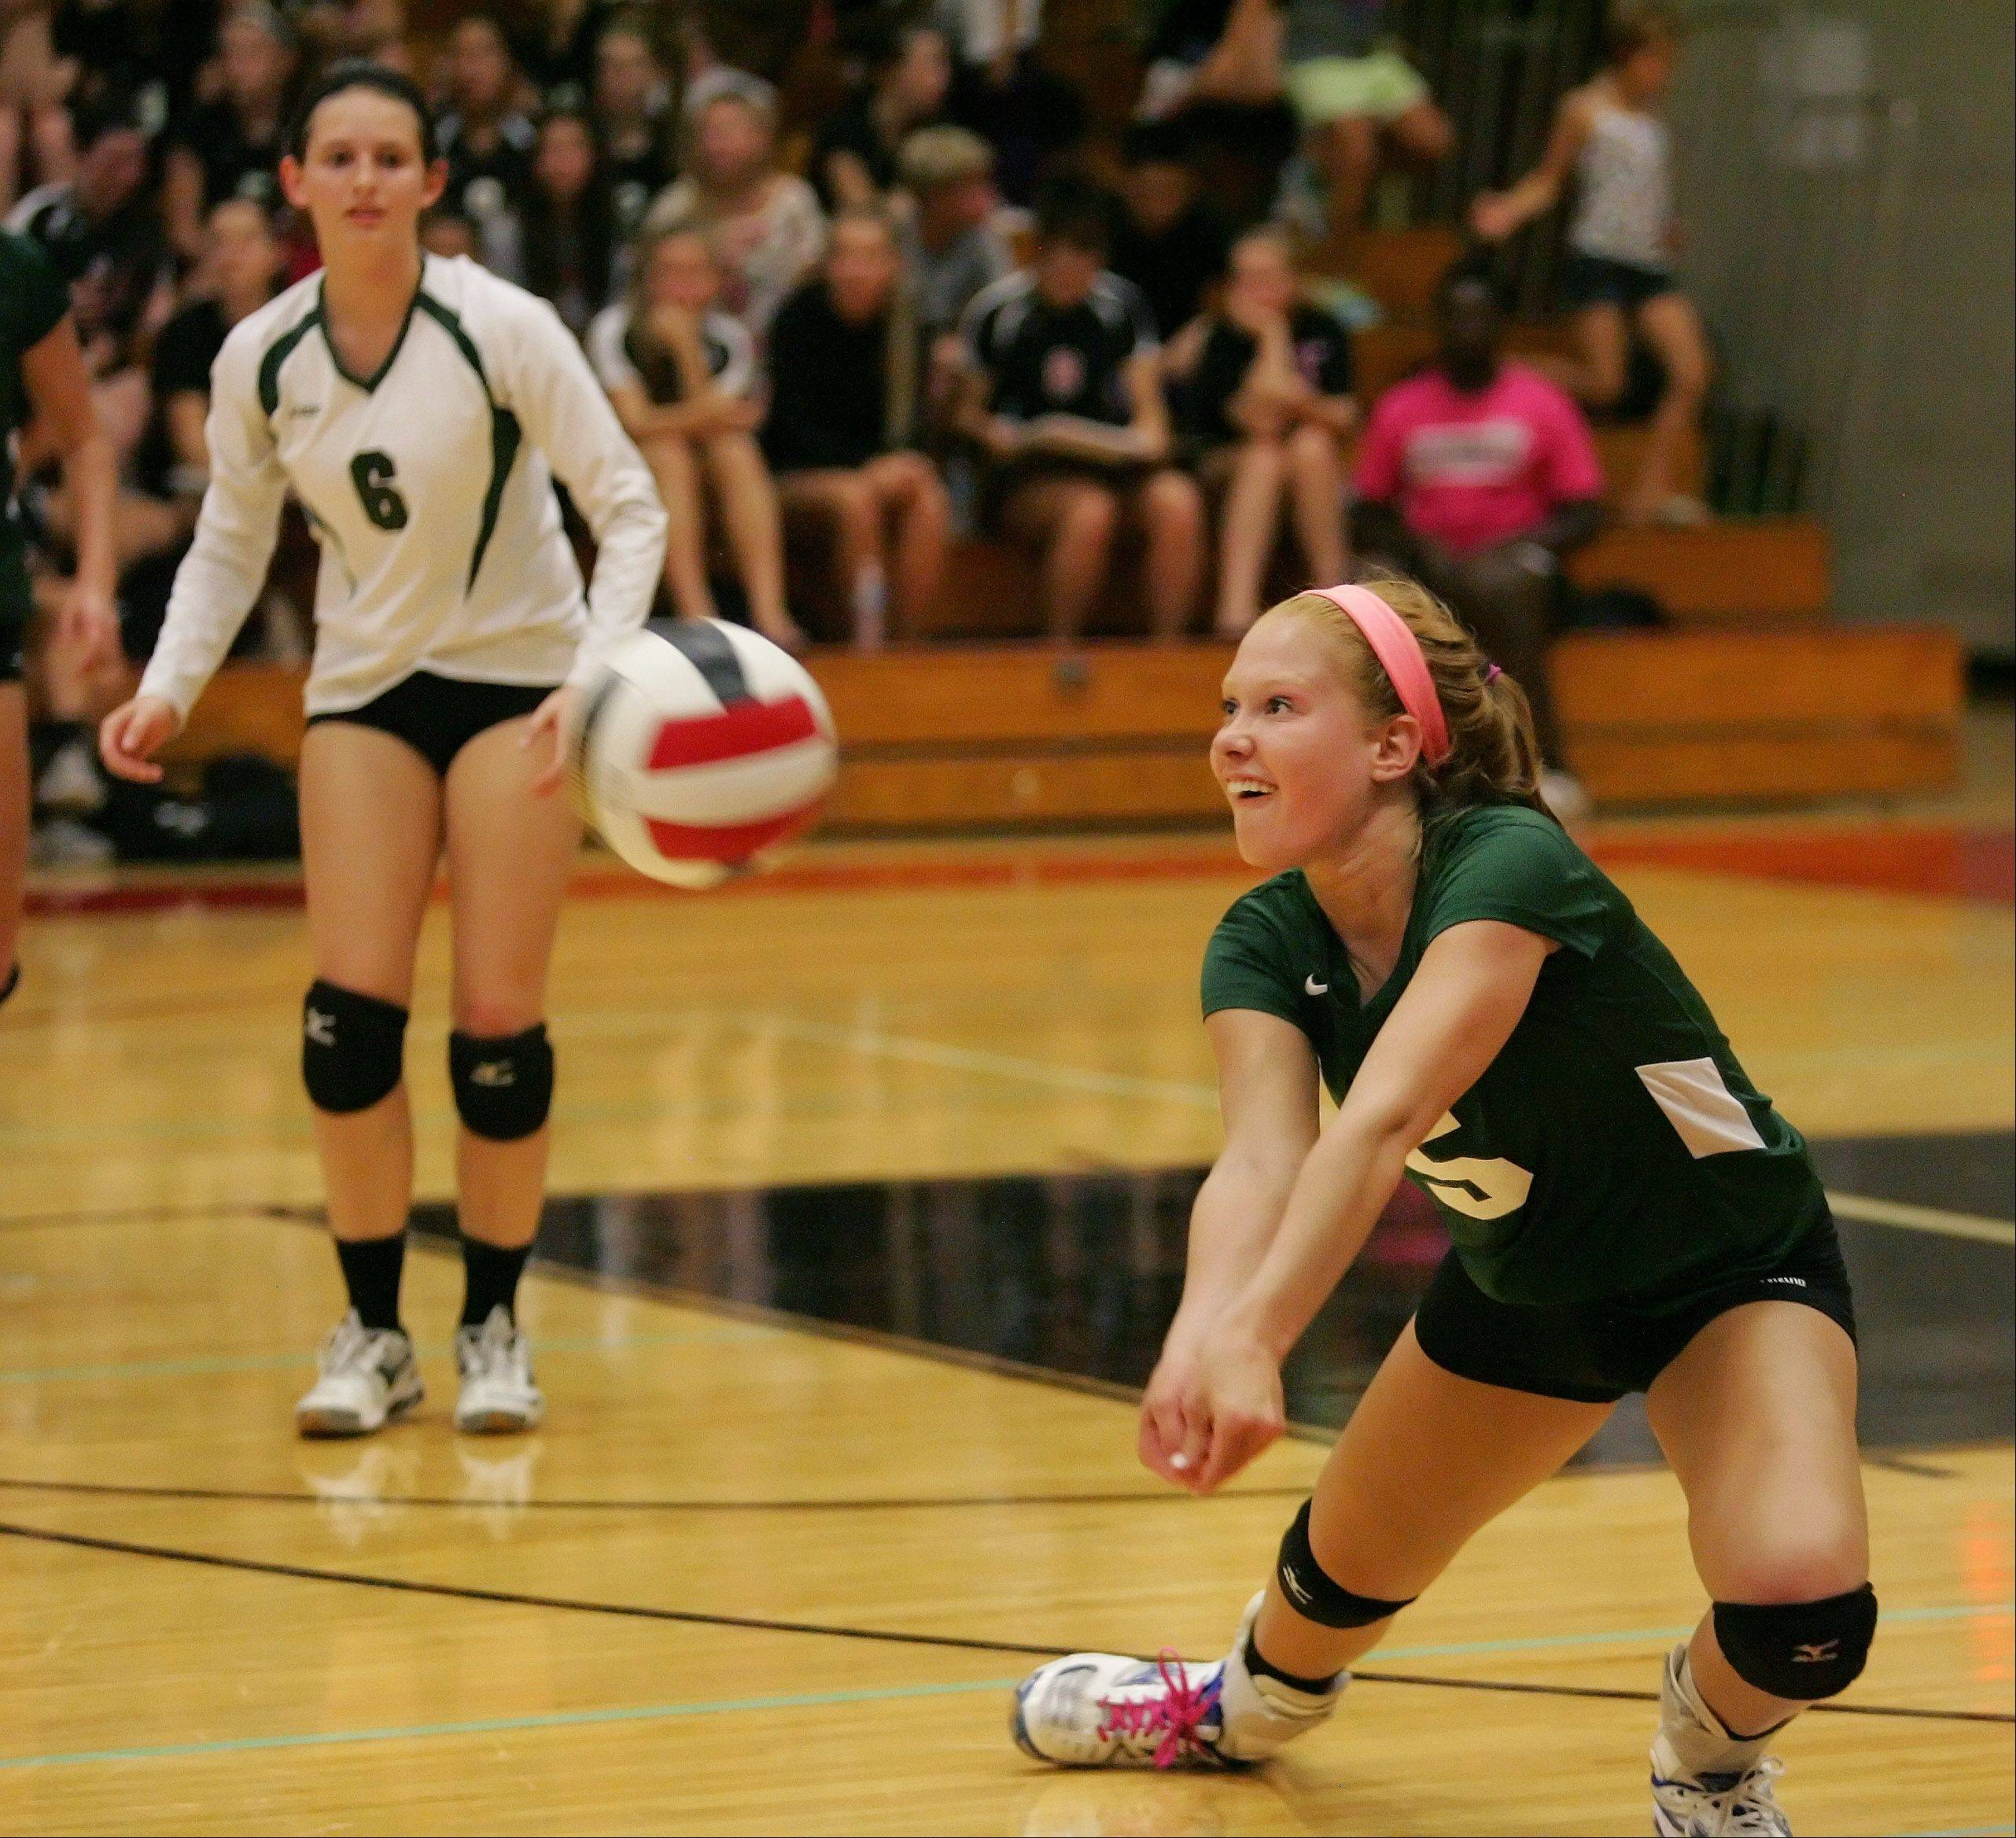 Glenbard West's Madeleine Payne, left, and Meg DeMaar during Tuesday's volleyball match against Glenbard East in Lombard.